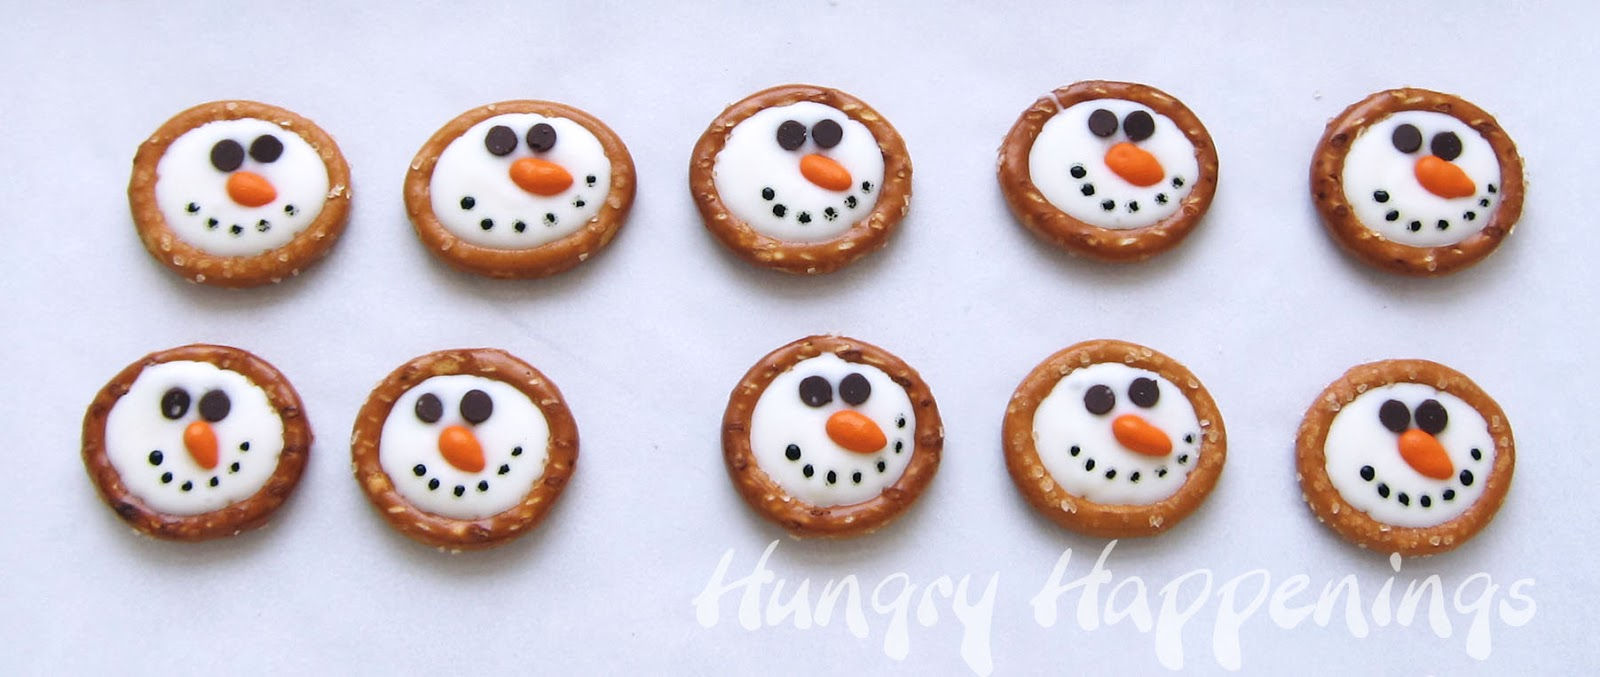 Preschool Christmas Party Food Ideas Part - 40: Hungry Happenings